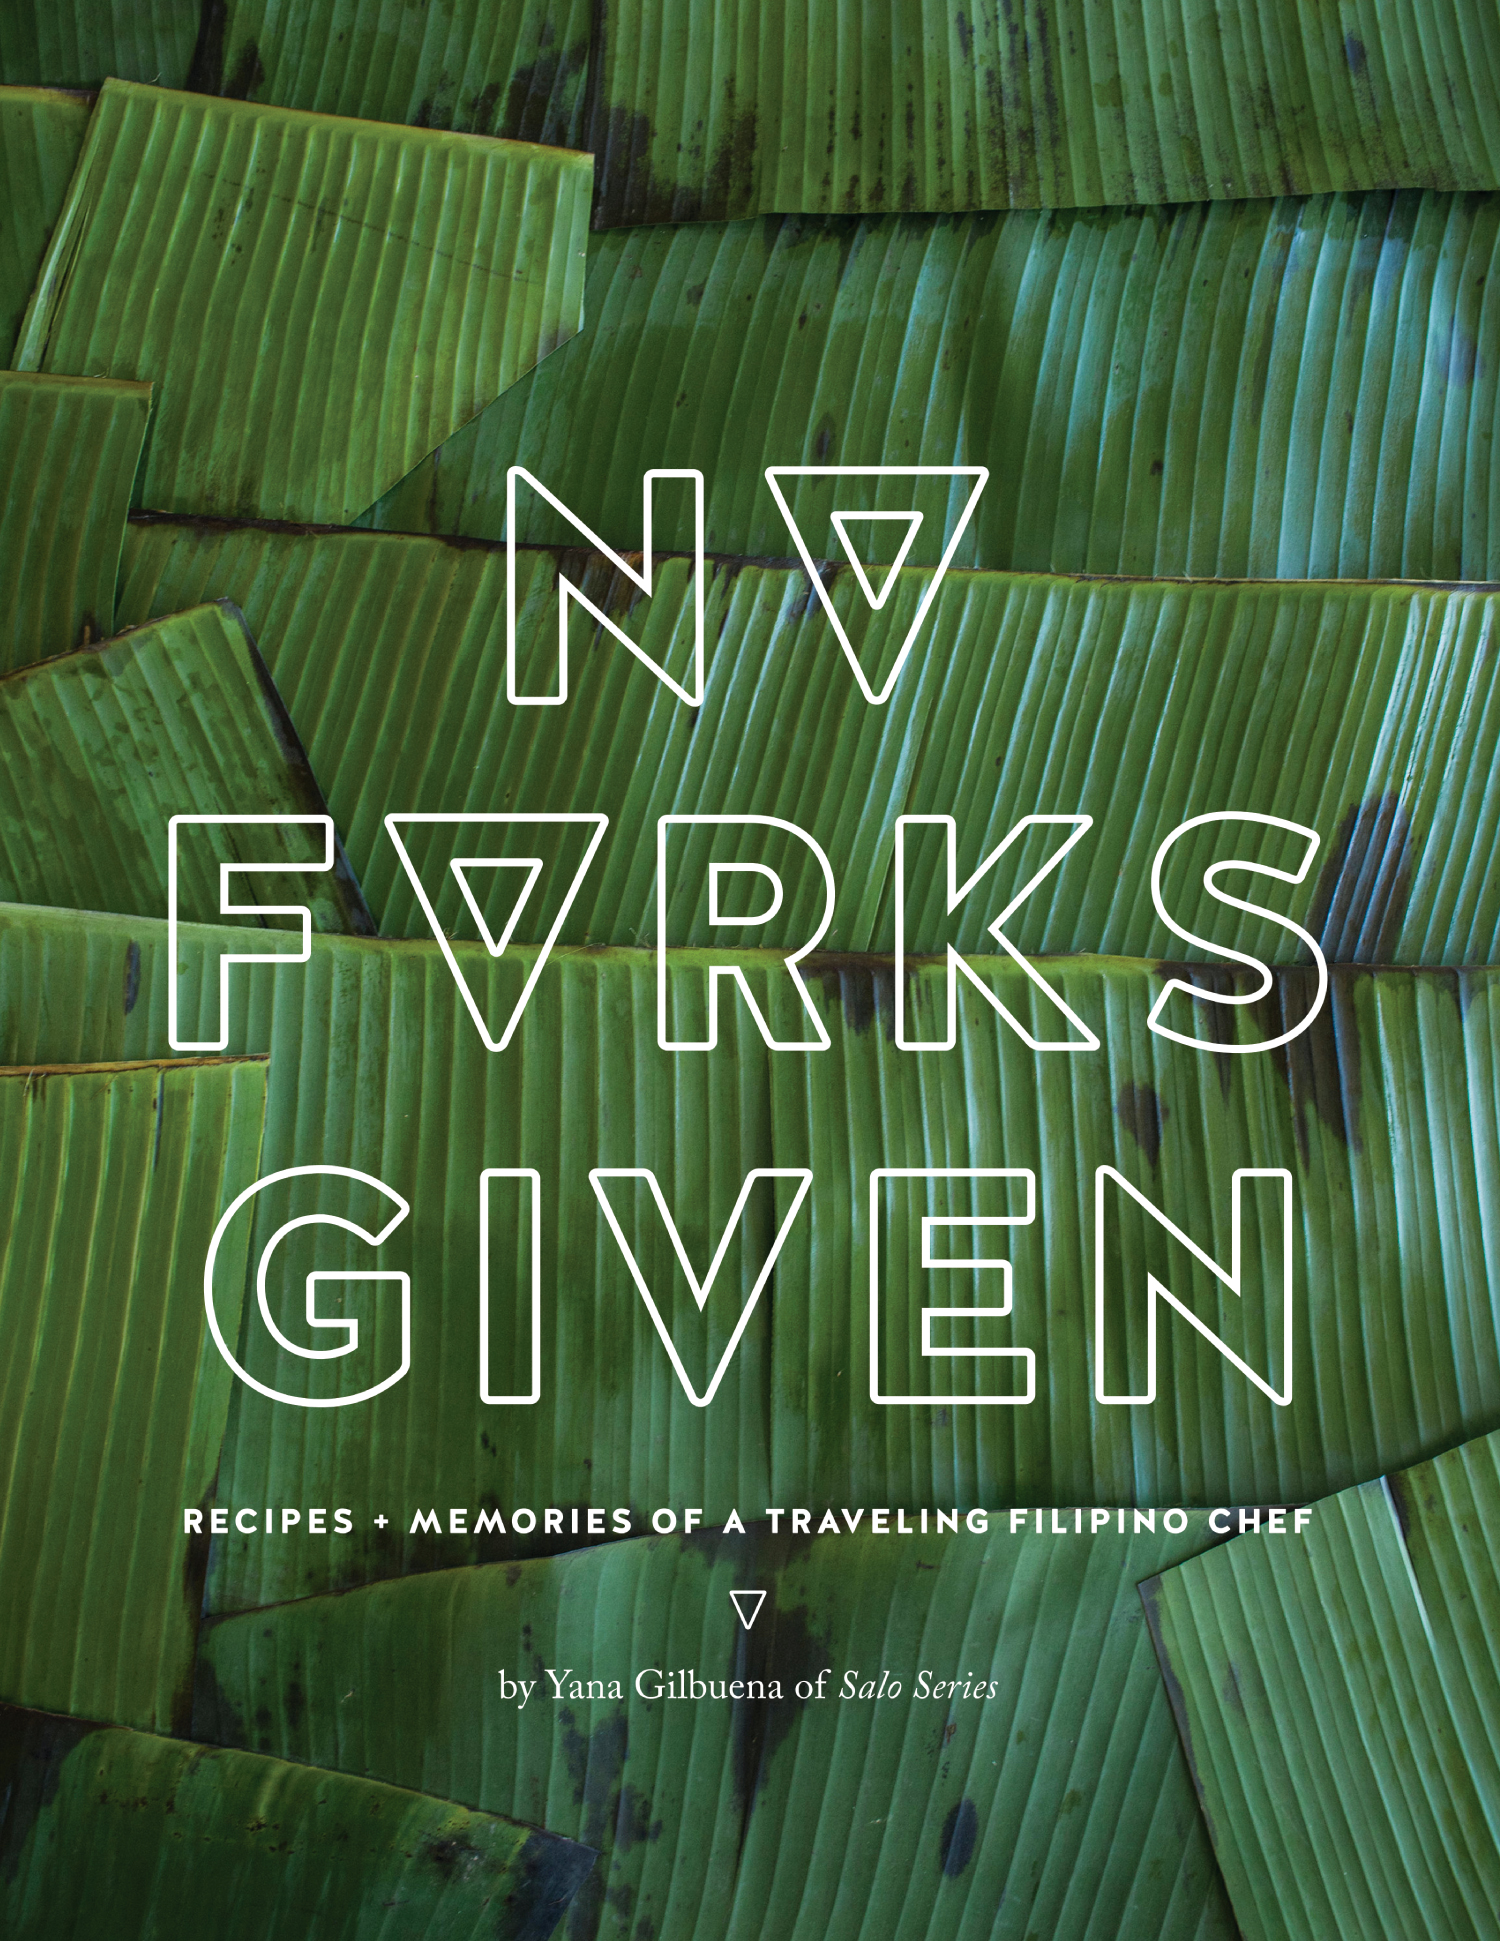 No-Forks-Given-Cover-2019.jpg